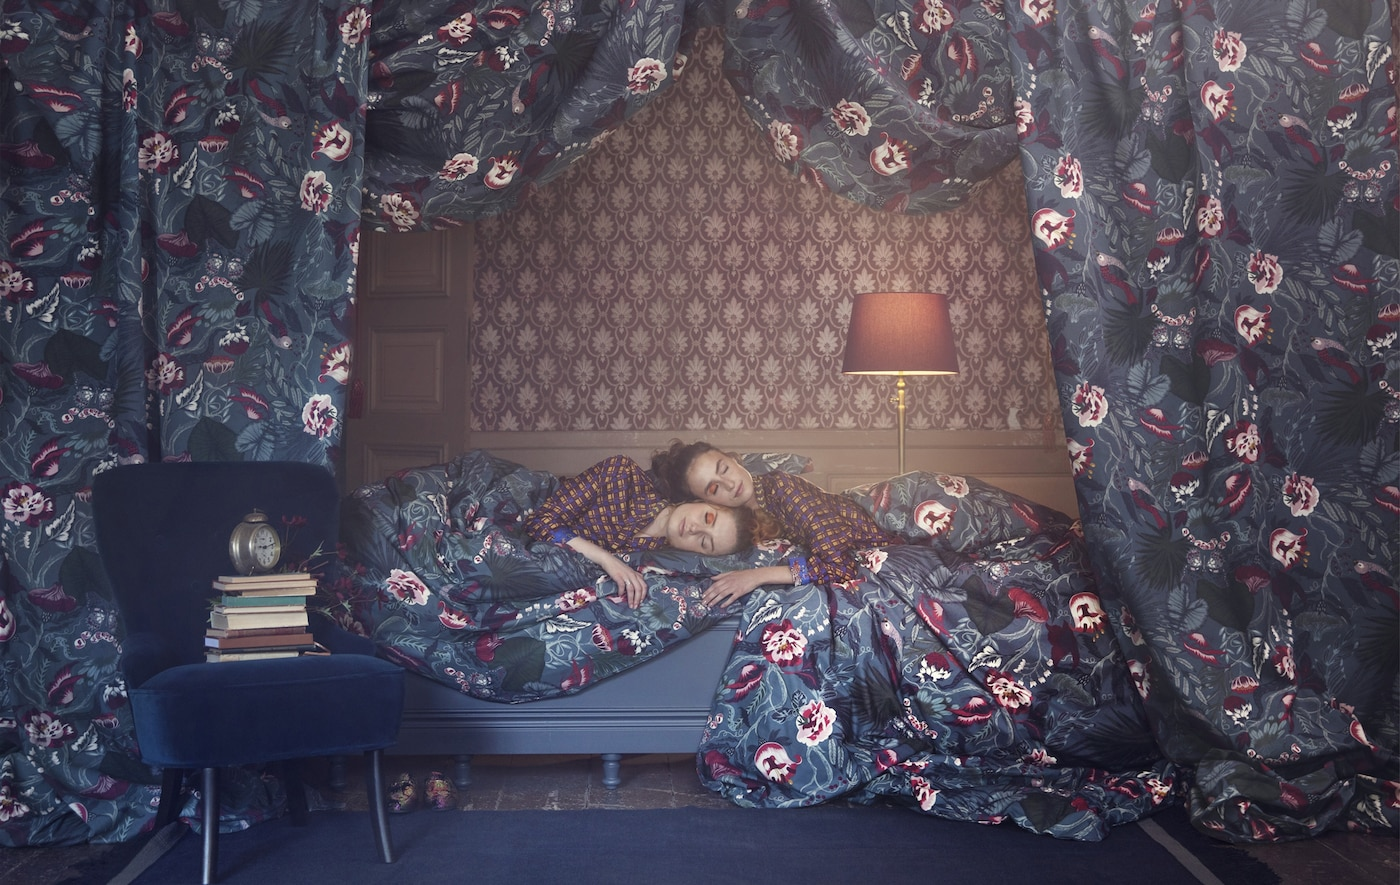 Two women laying on a bed with patterned wallpaper surrounded by floral fabric.